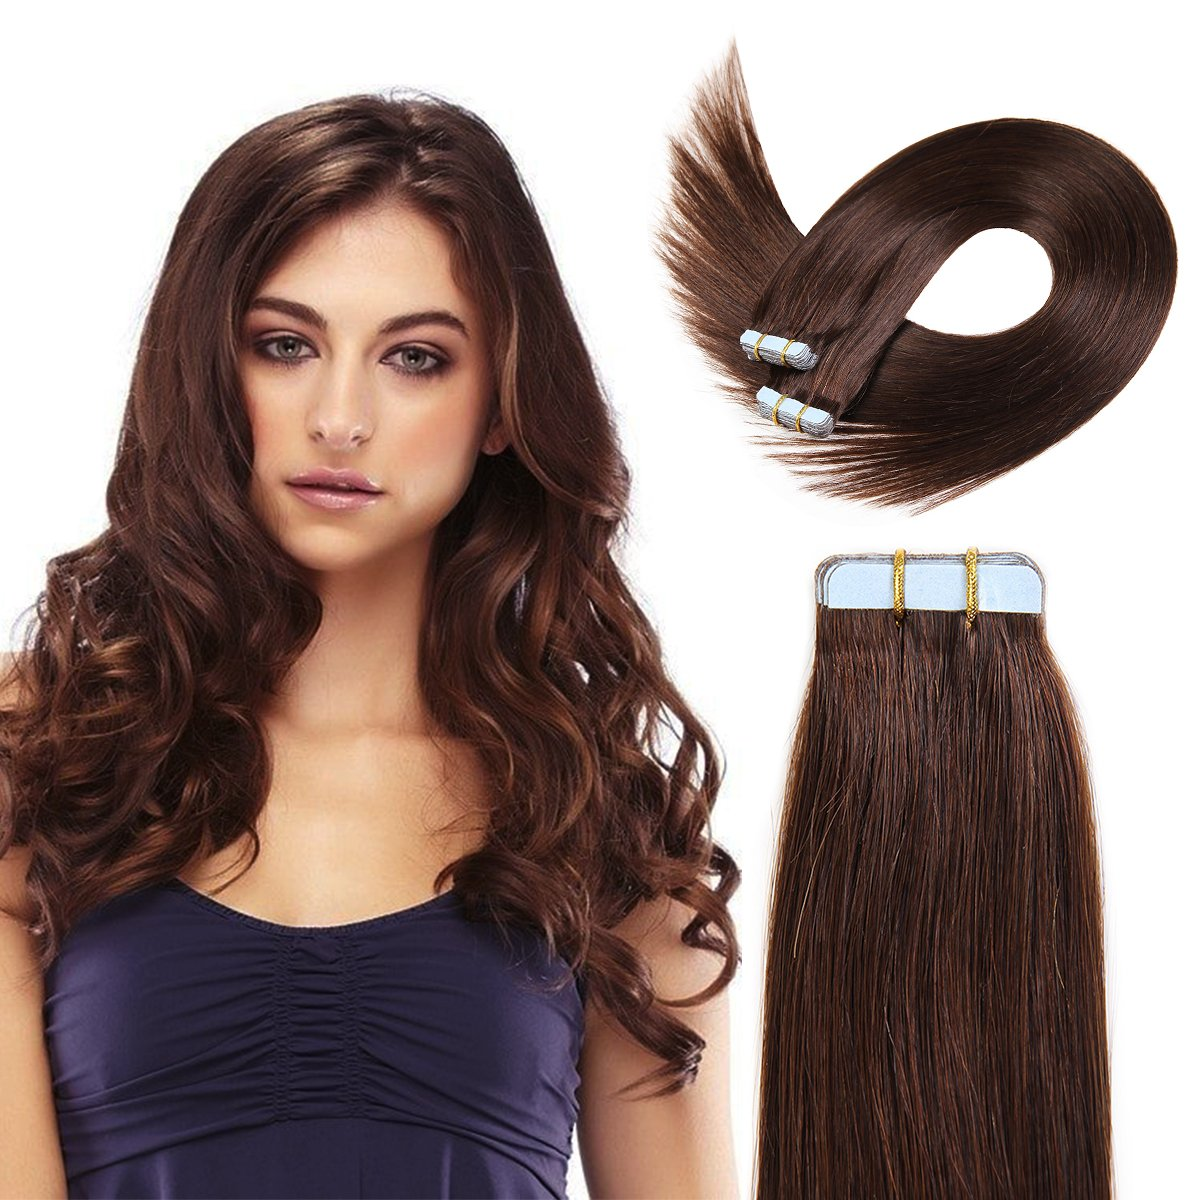 20 Inch Tape In Hair Extensions 100% Remy Straight Tape Human Hair Extensions 20pcs 50g/pack (#4) Medium Brown ... by BEAUTY ON LINE